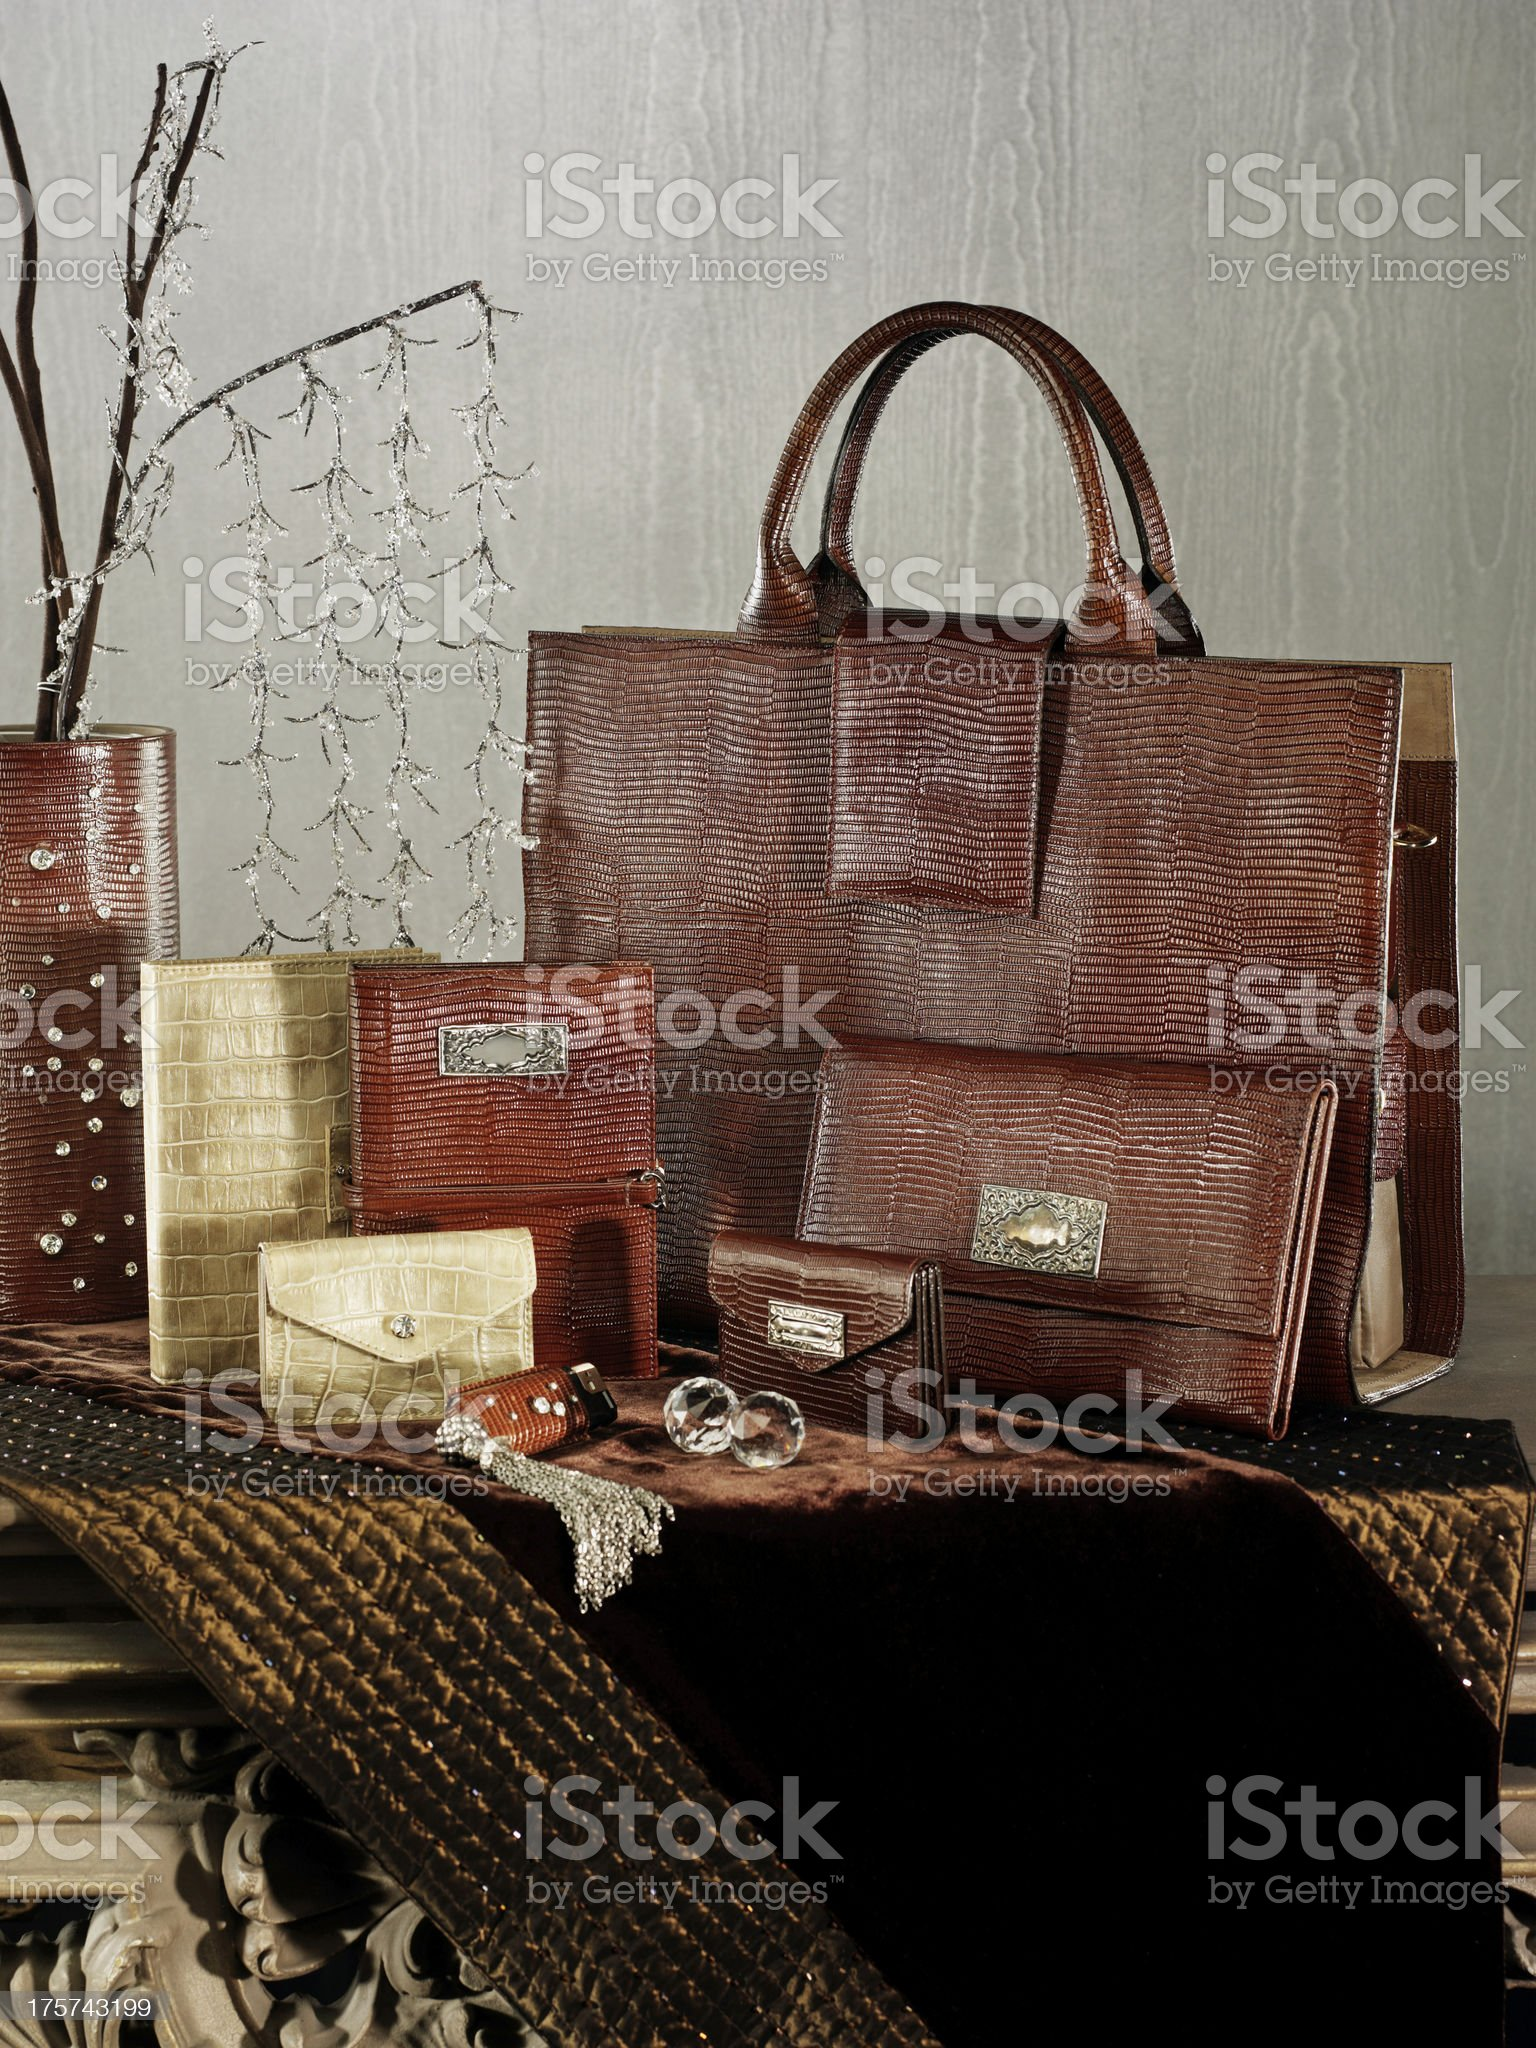 leather gifts royalty-free stock photo